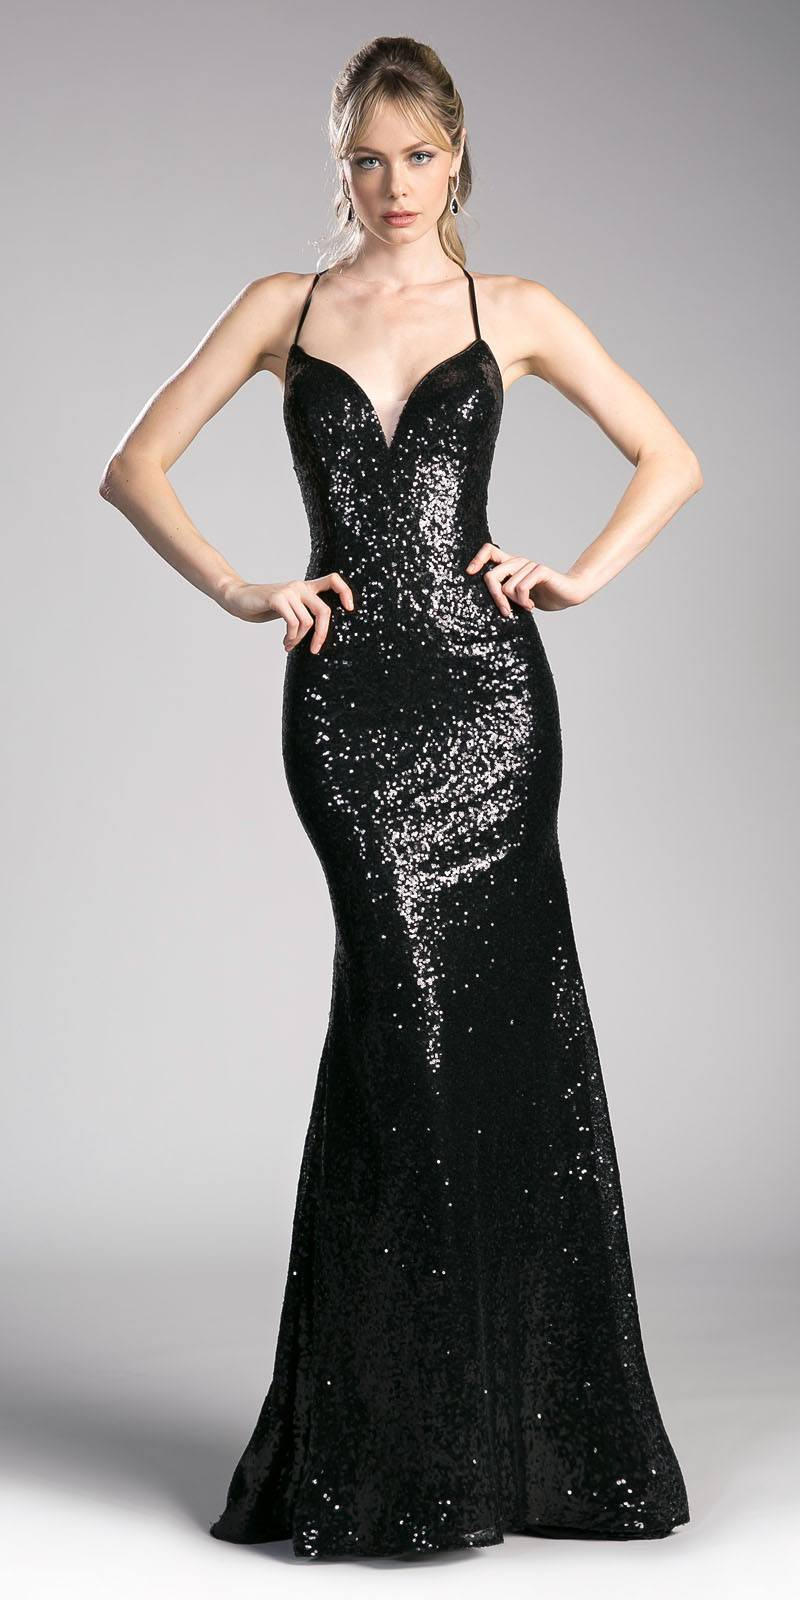 005076cd40c Source https   www.discountdressshop.com products black-v-neck-sequins -mermaid-prom-gown-strappy-back